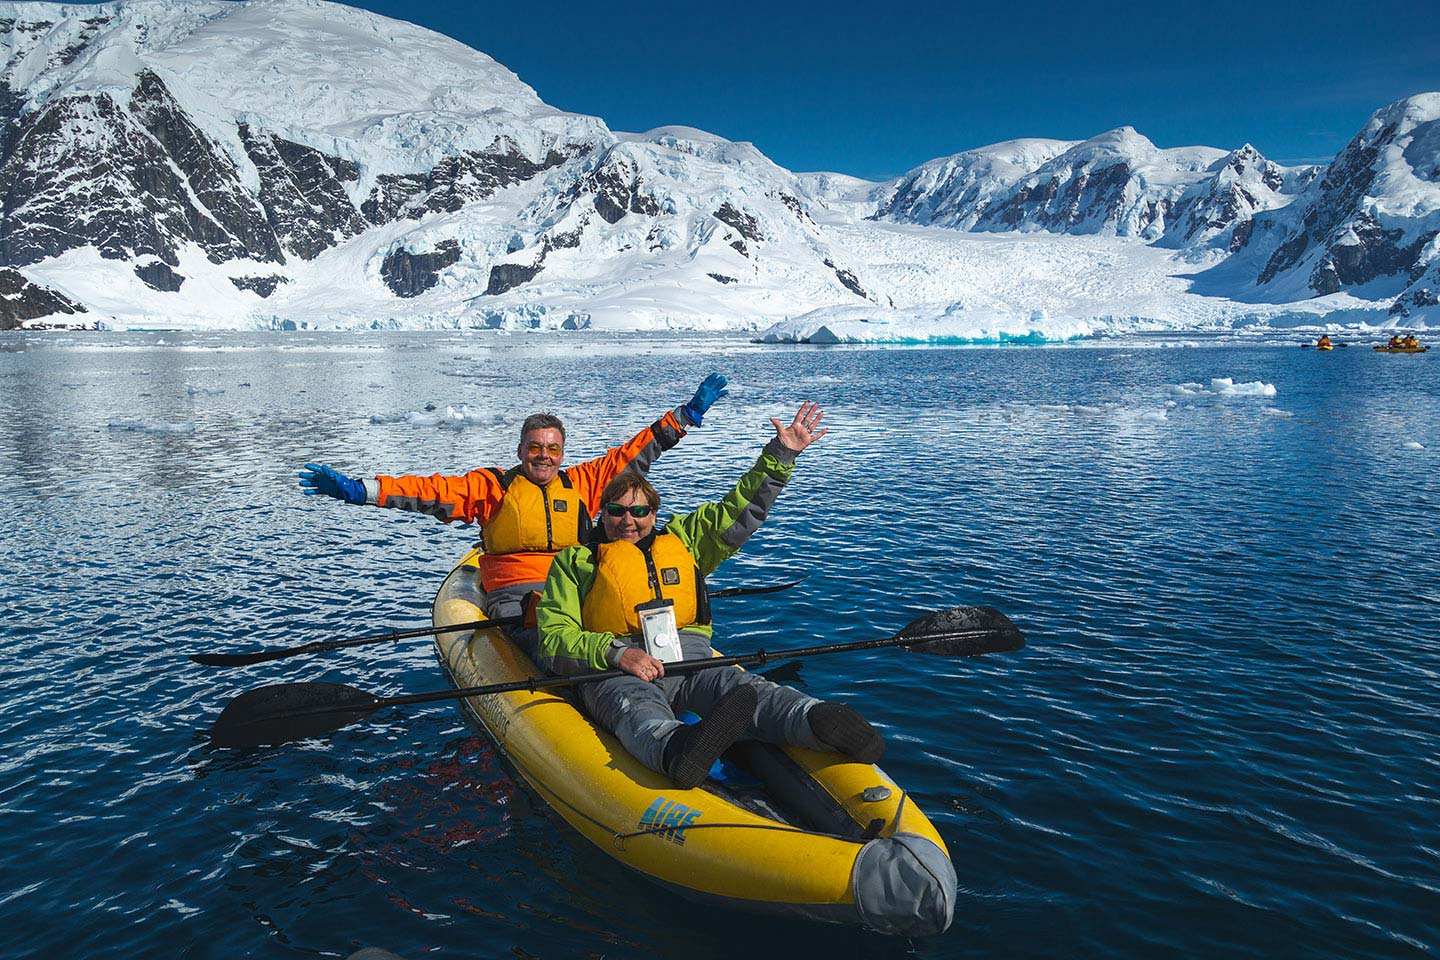 Quark Expeditions guests participate in the Sea Kayaking program during an Antarctic voyage.